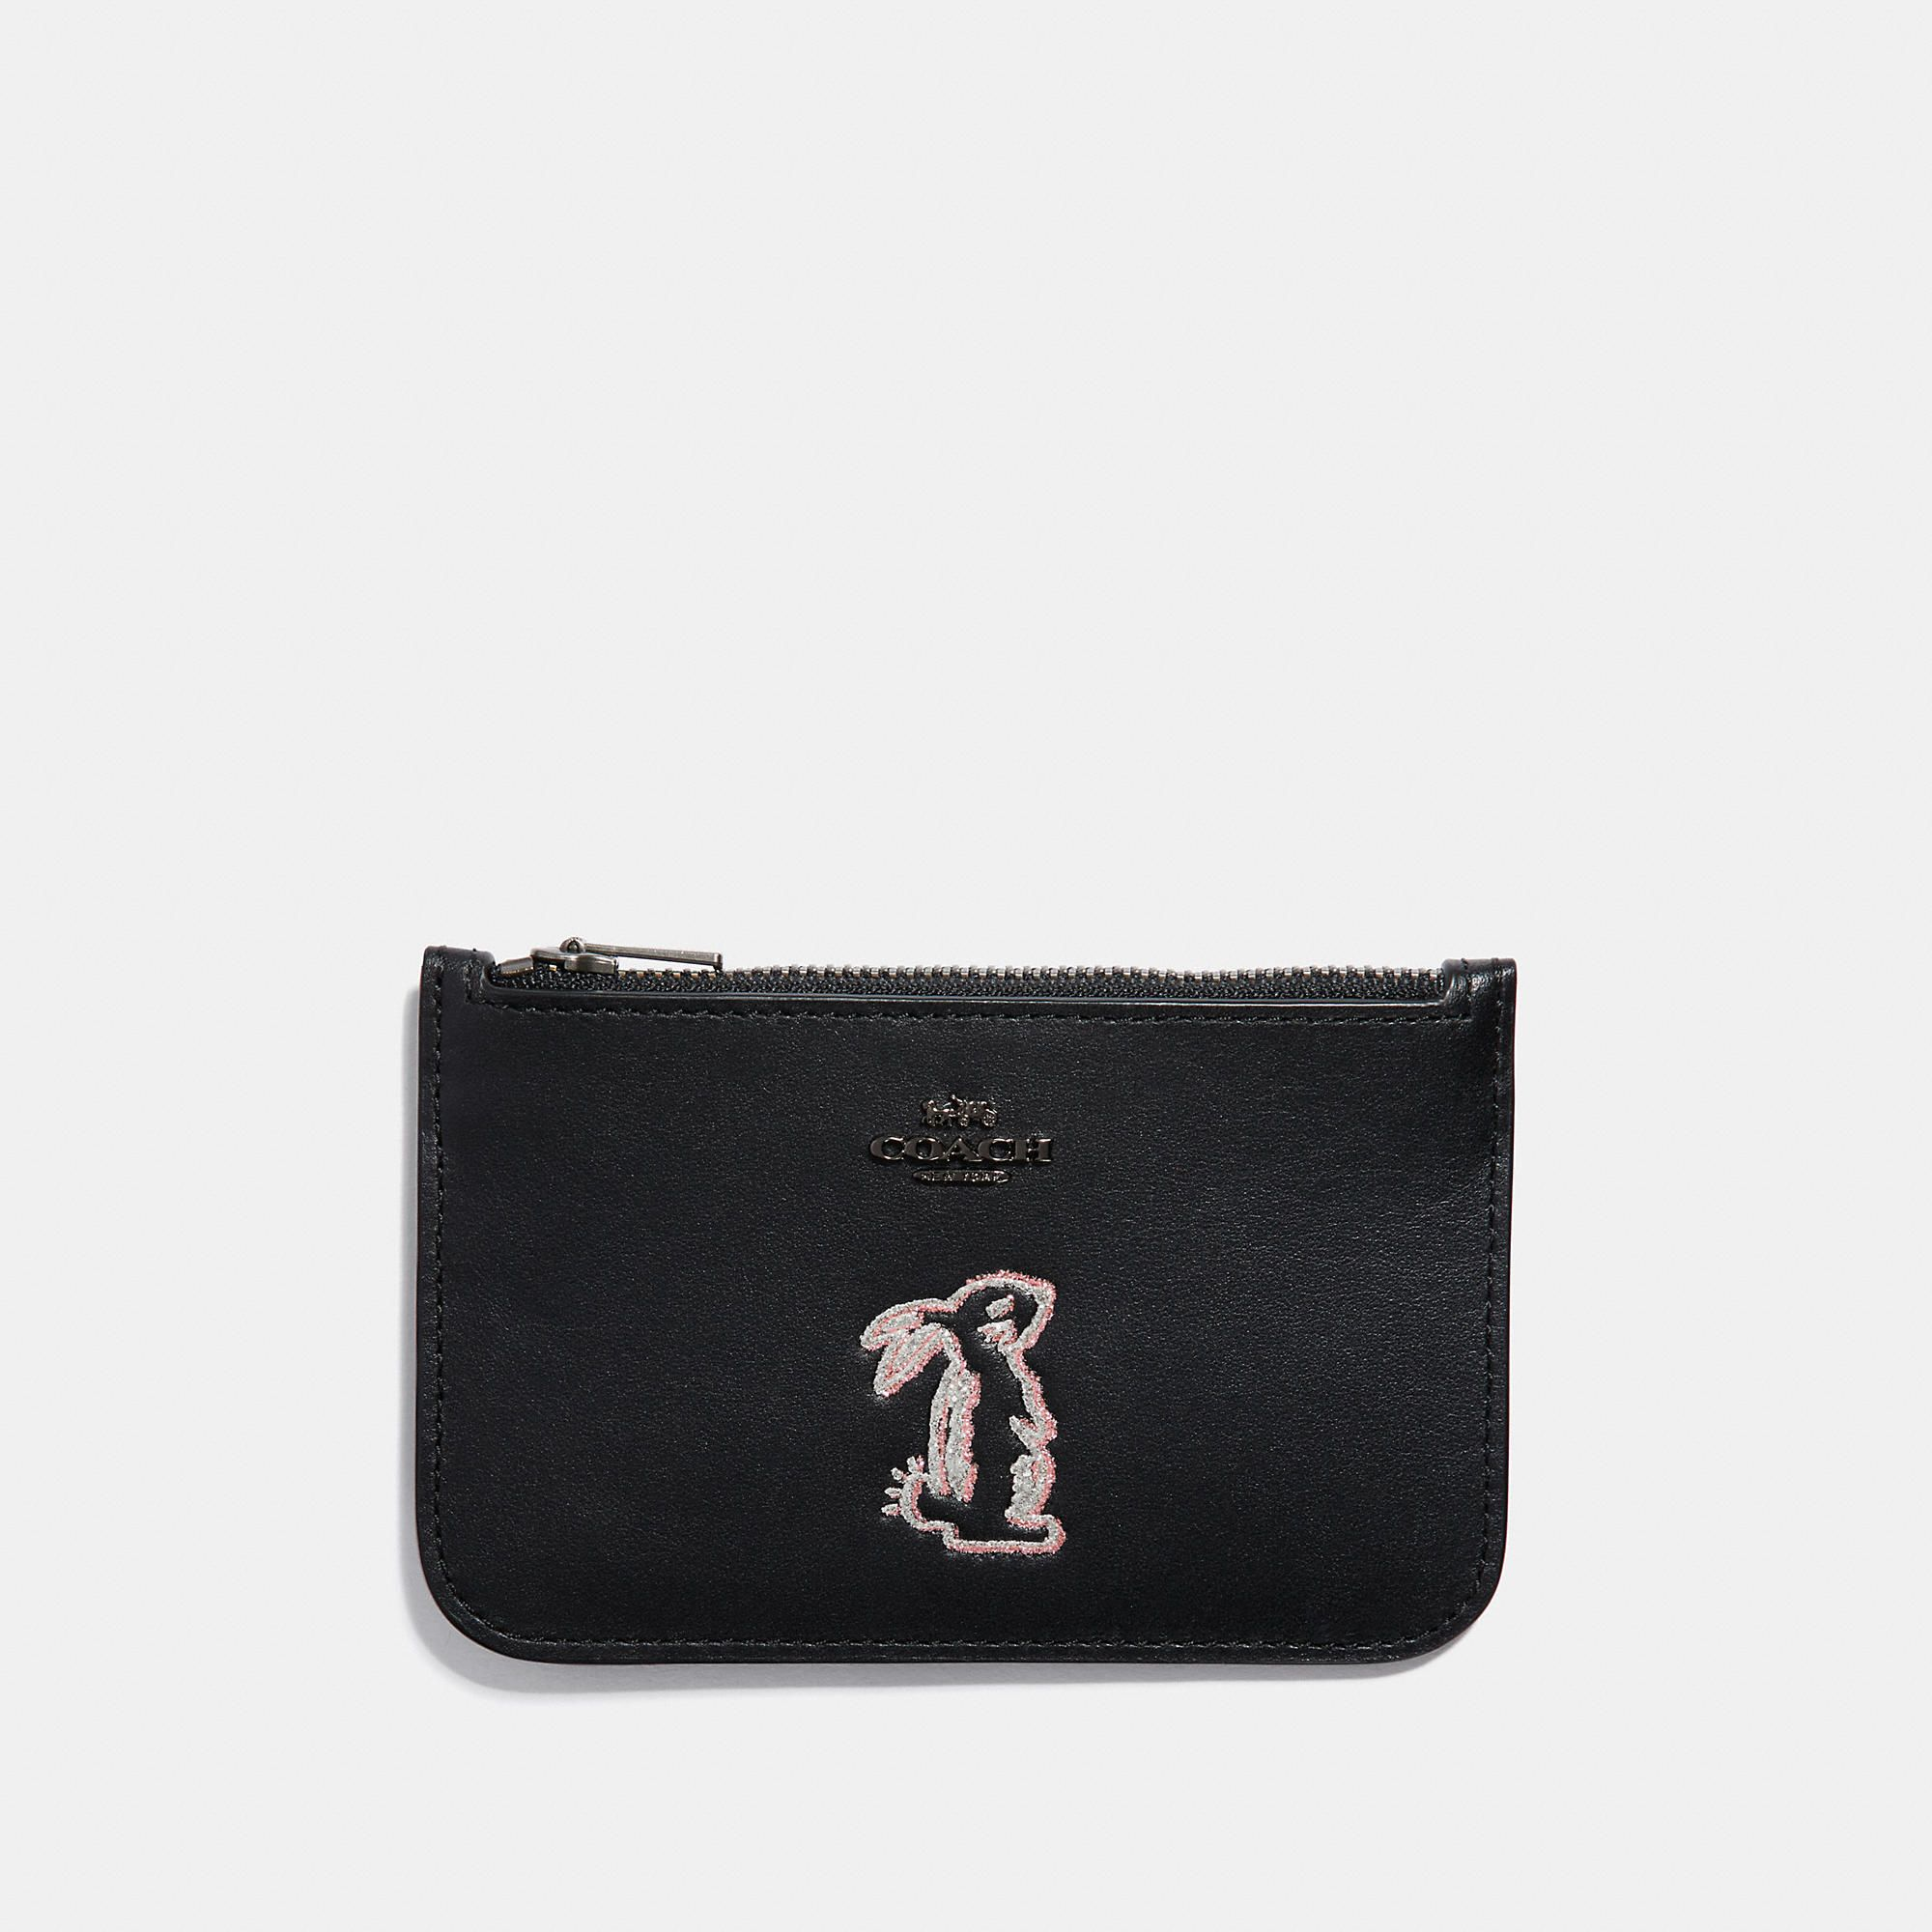 4badb2f4f4d5 Selena zip card case with bunny | Products | Fashion, Zip around ...